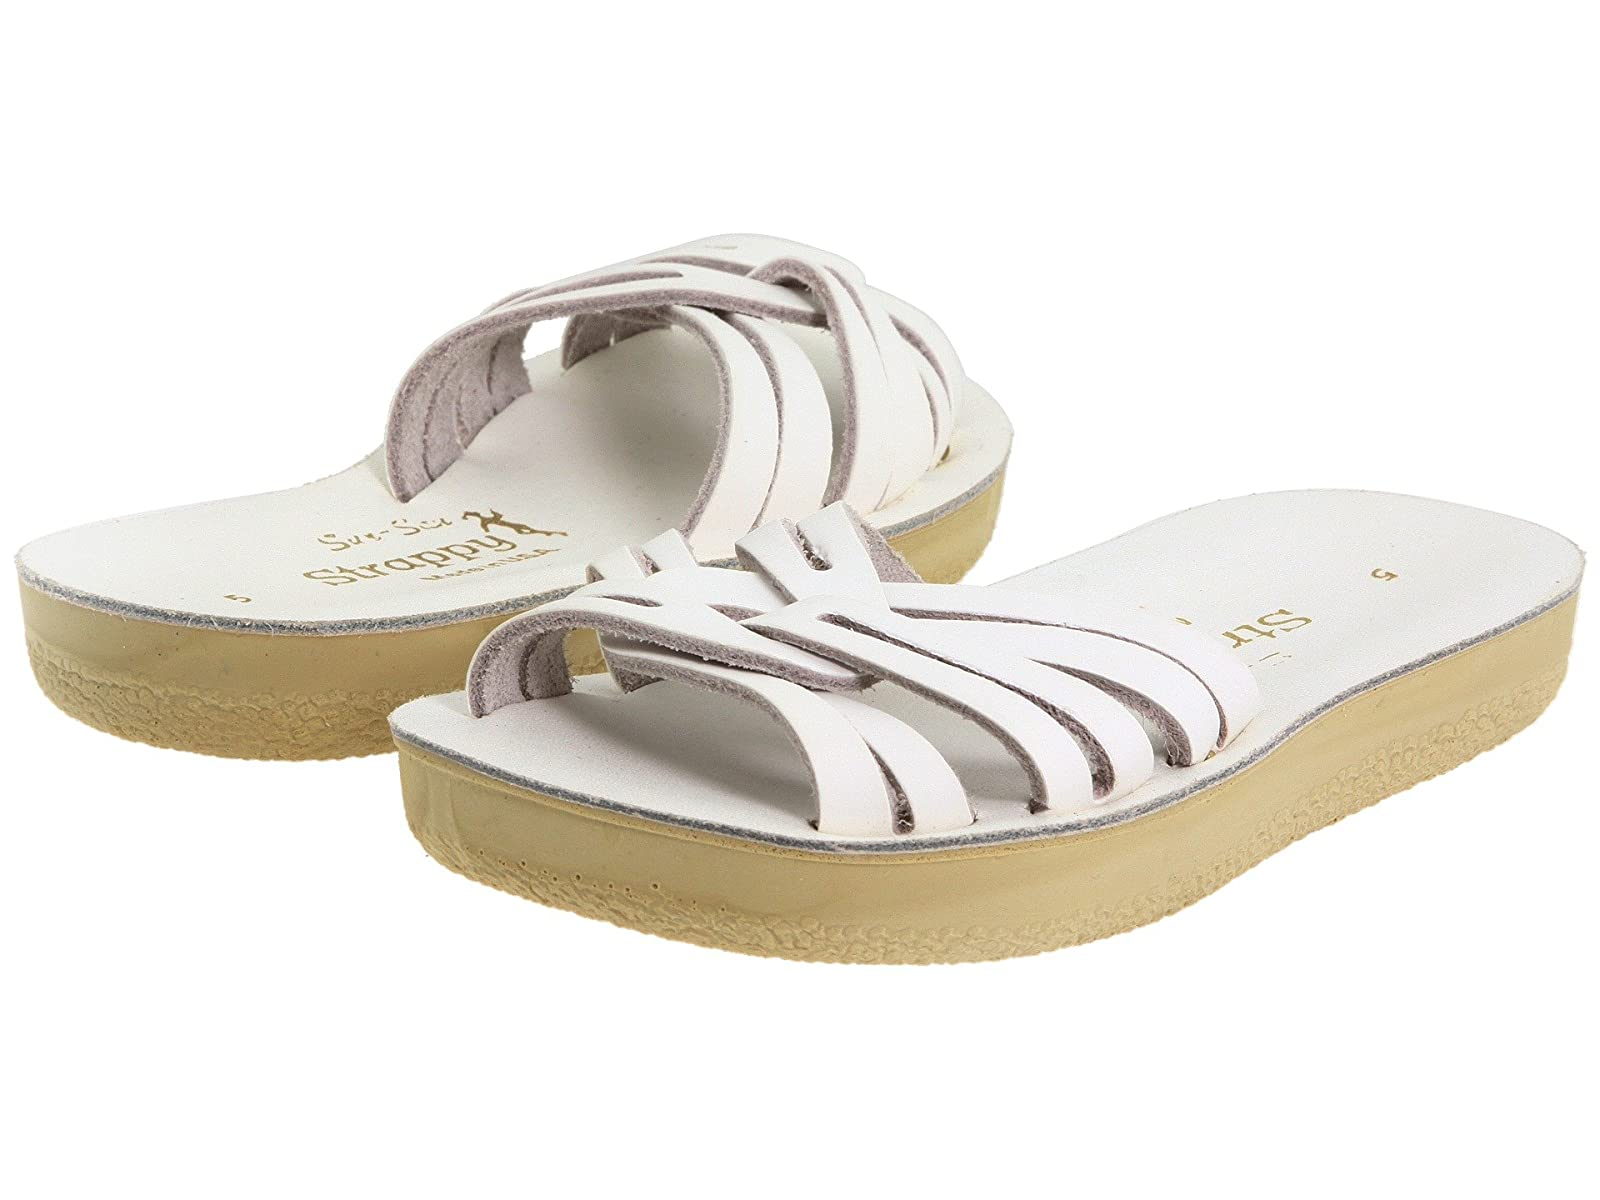 Salt Water Sandal by Strappy Hoy Shoes Sun-San - Strappy by Slide (Toddler/Little Kid) 7d3a13